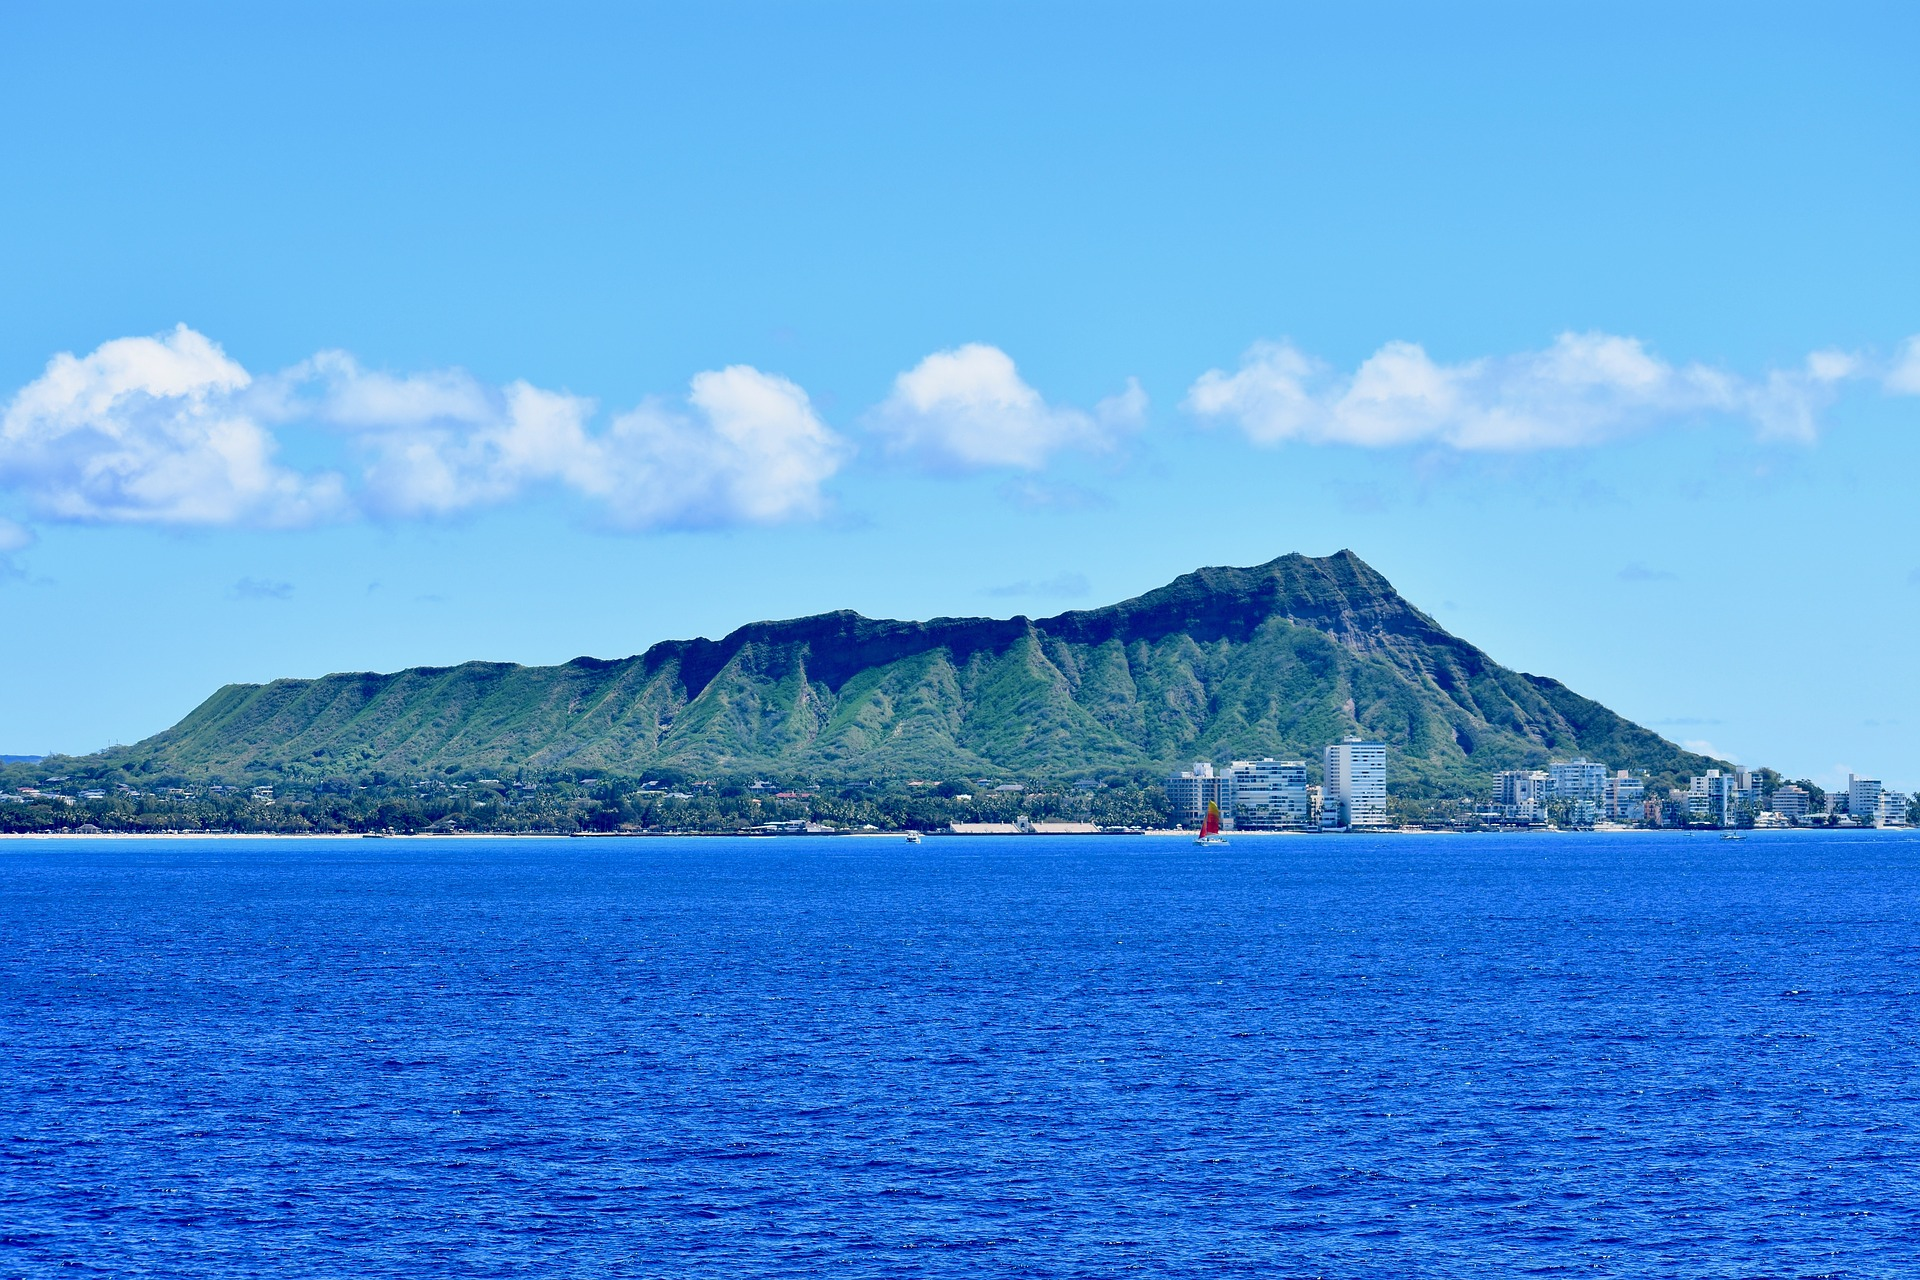 diamondheadhawaii.jpg